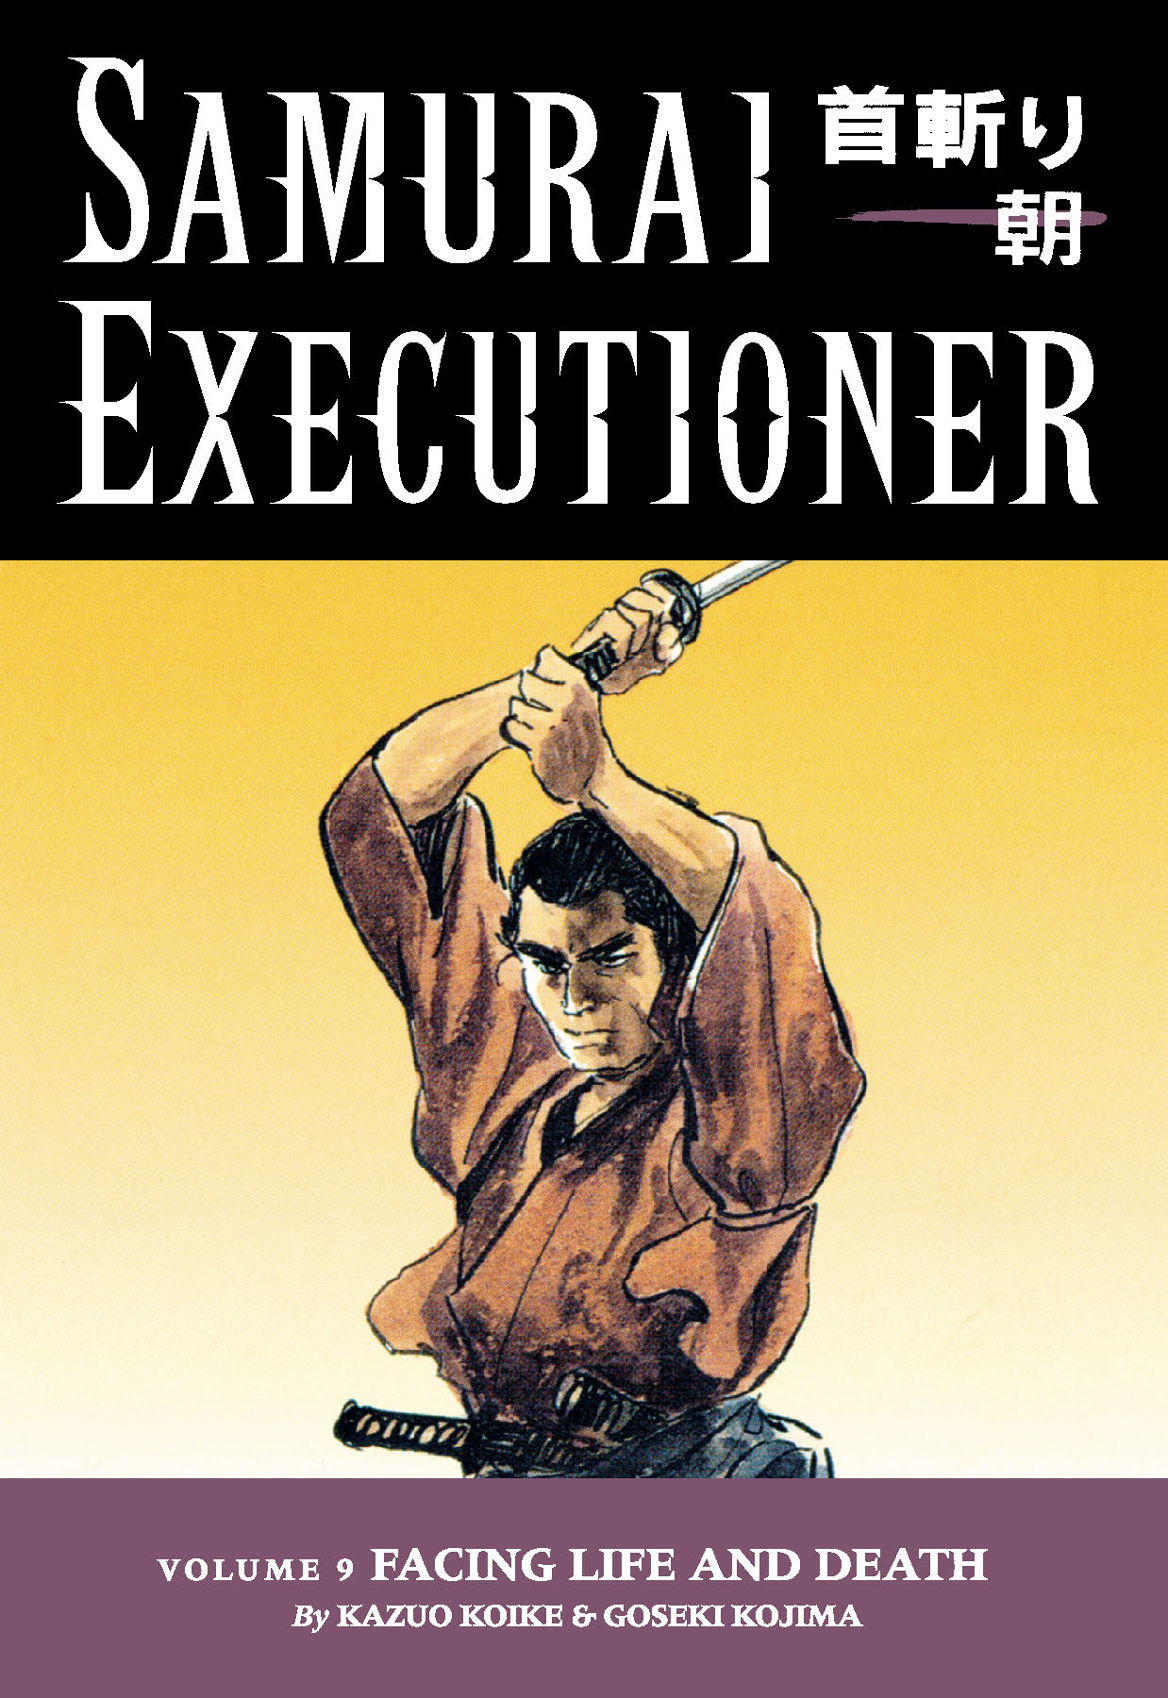 Samurai Executioner Vol. 9